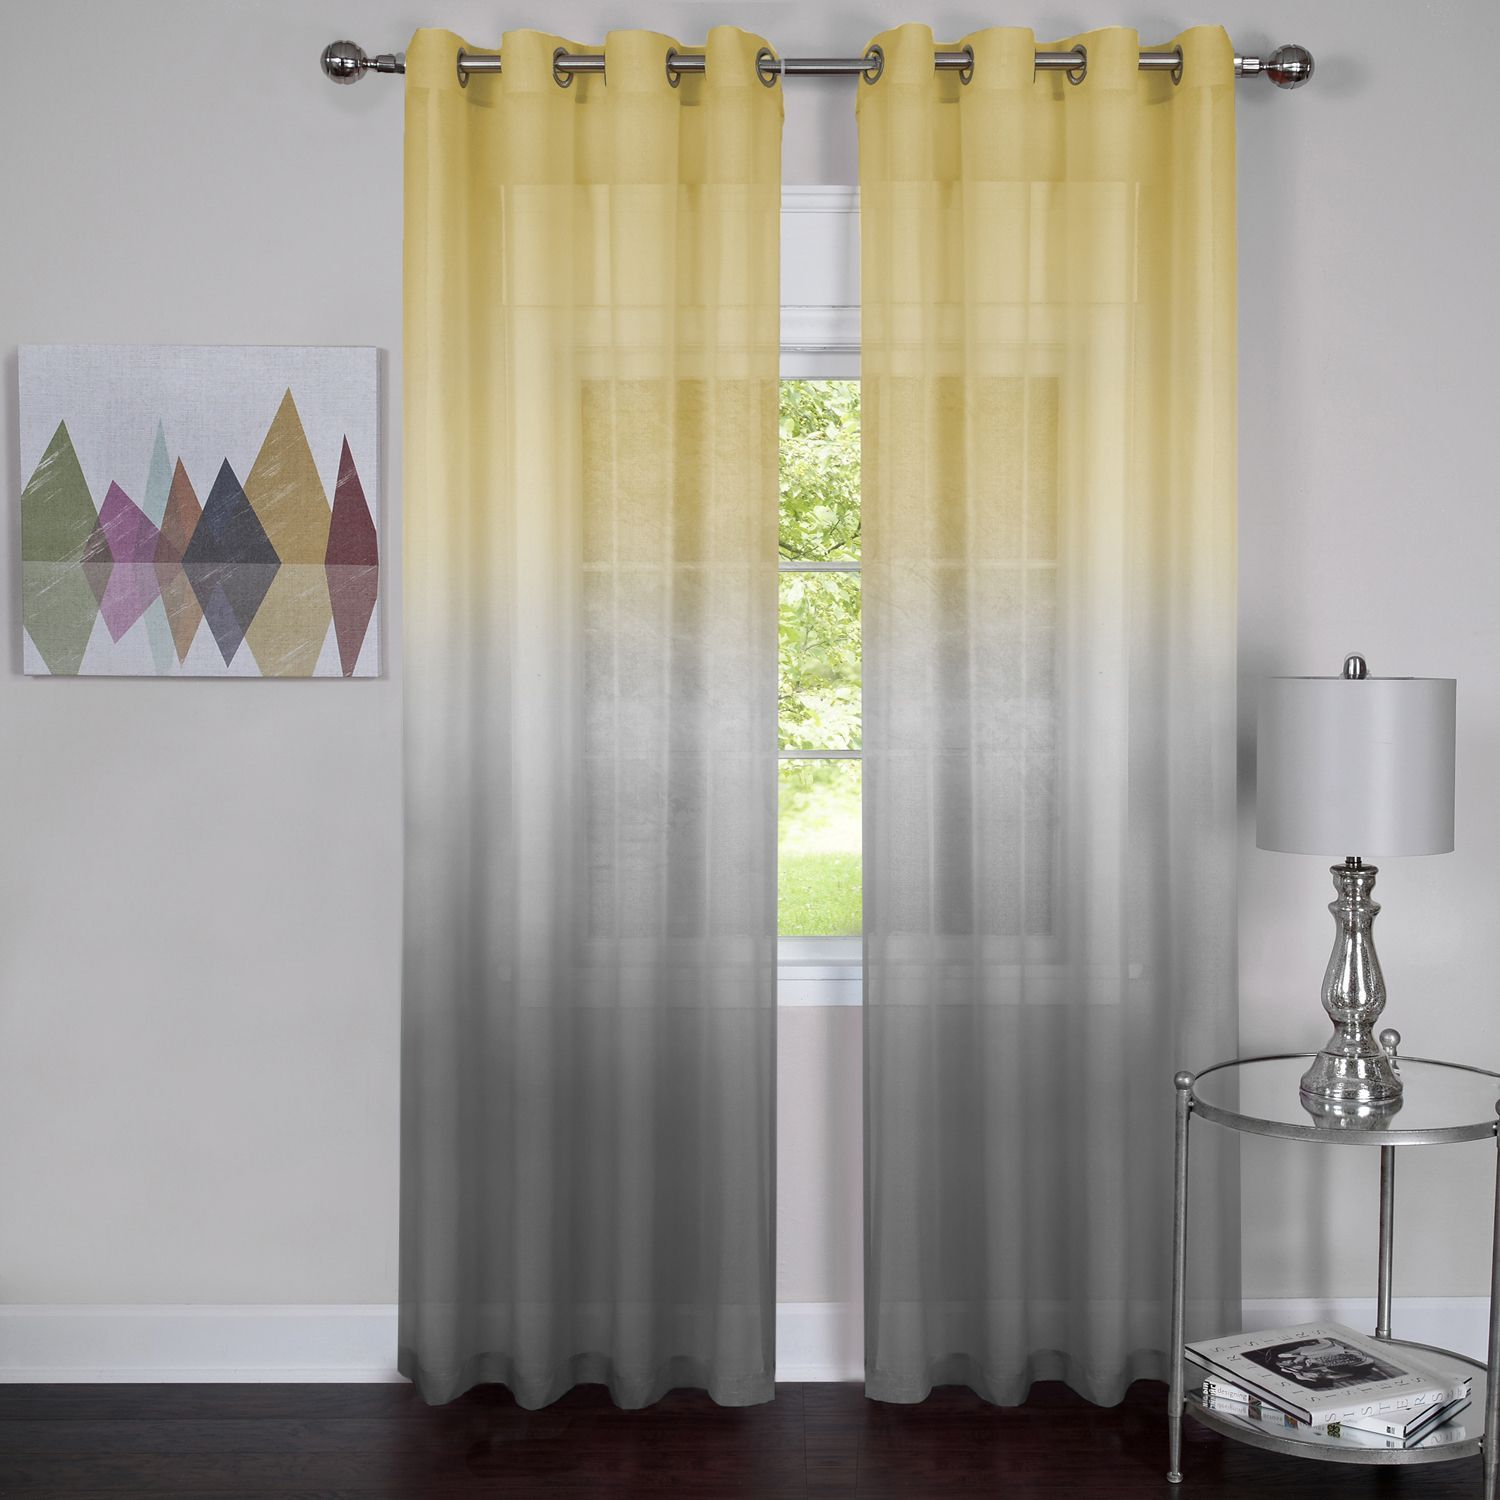 Elegant This Semi Sheer Curtain Panel Comes In Two Different Ombre Patterns. The  Yellow To Grey